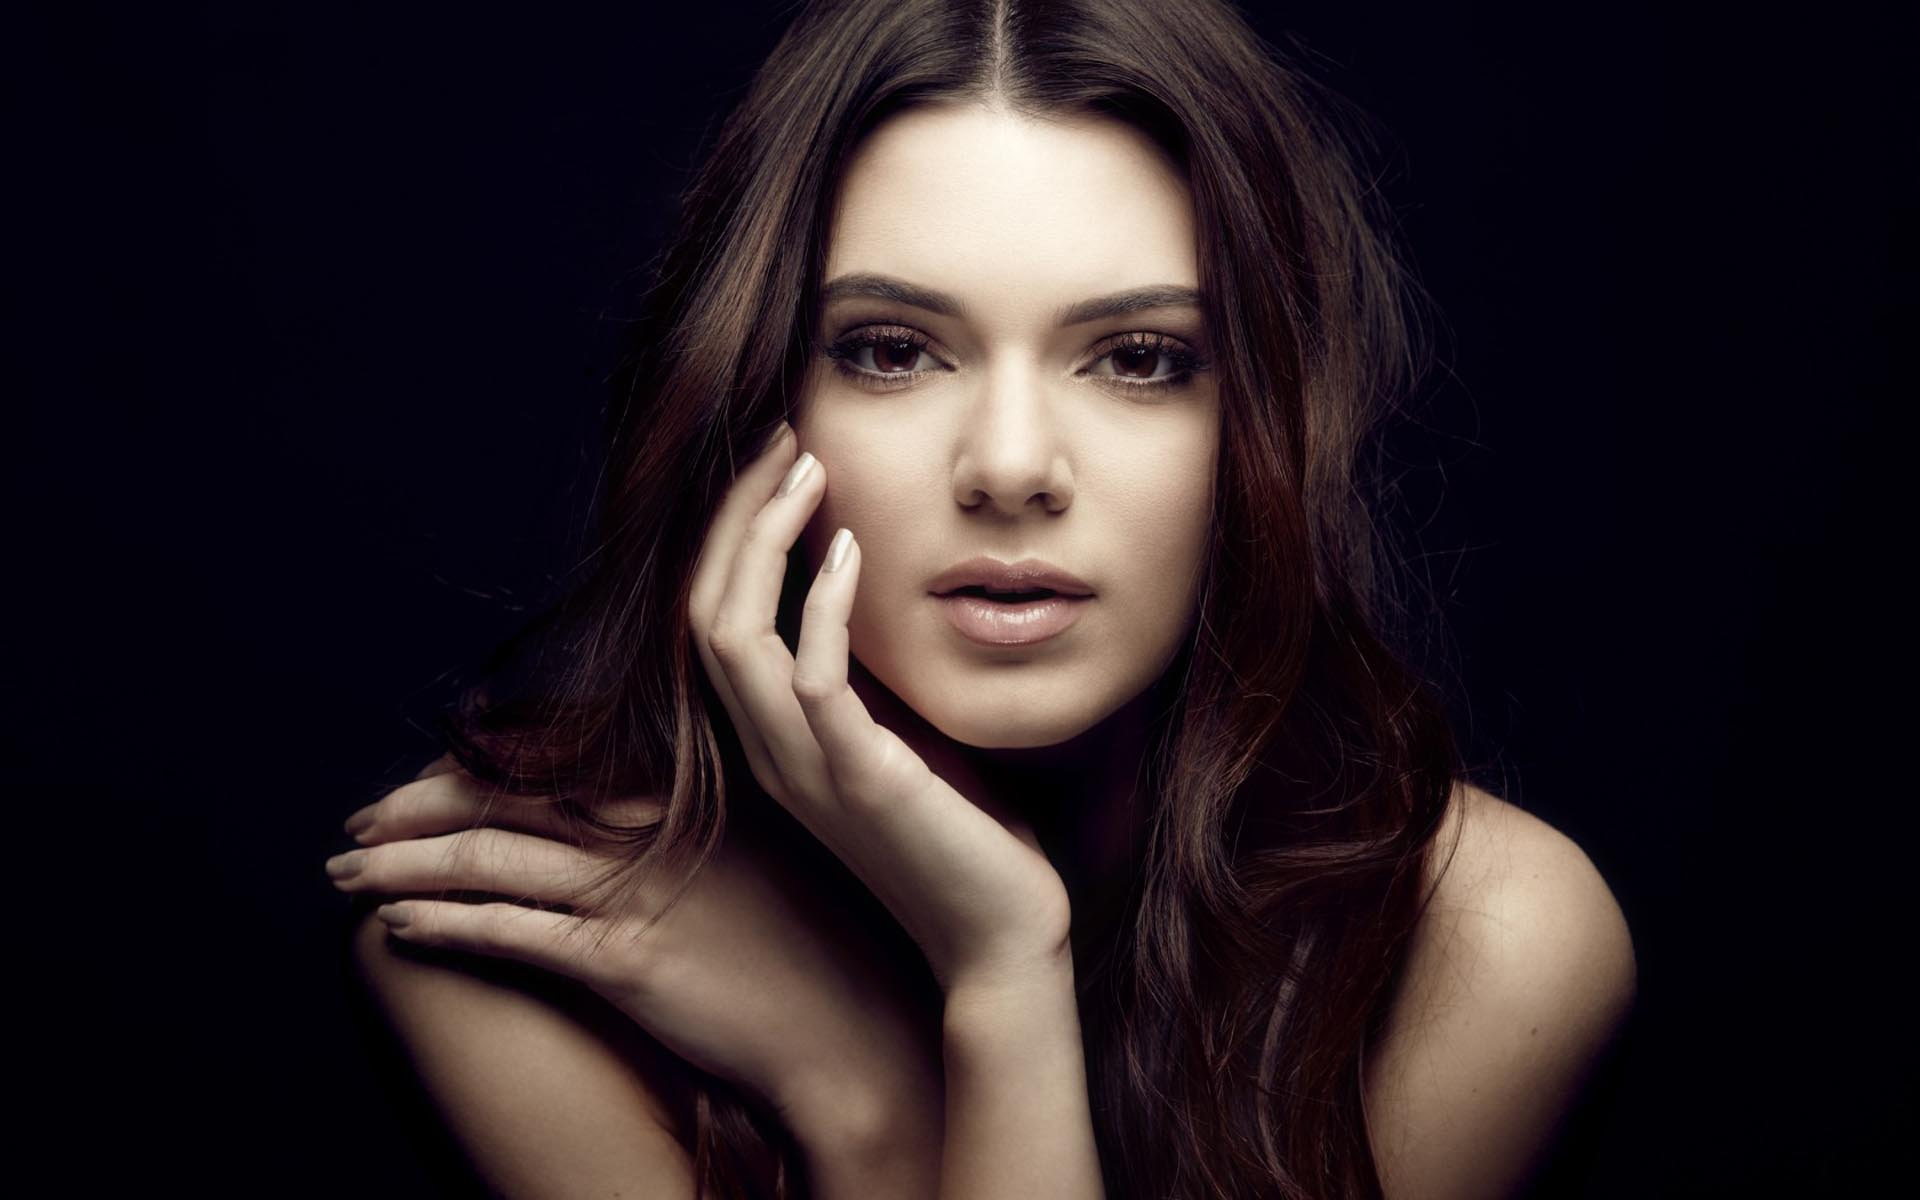 kendall jenner hd wallpaper background